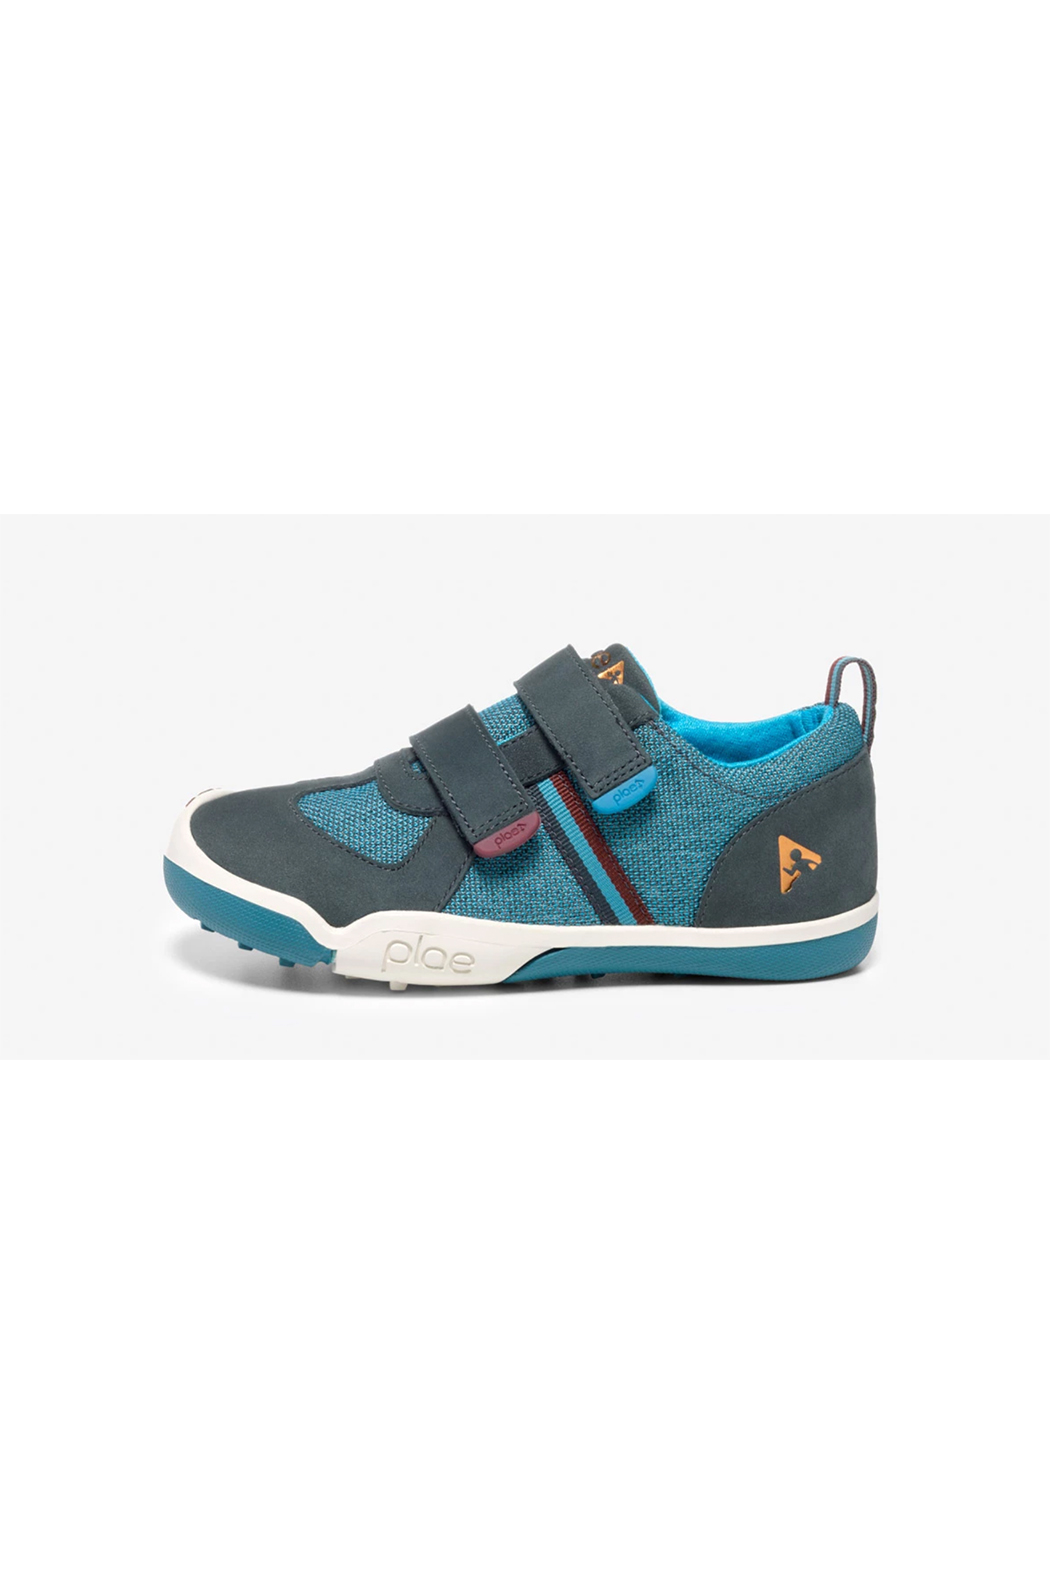 PLAE Charlie Waterproof Youth Sneakers - Front Cropped Image